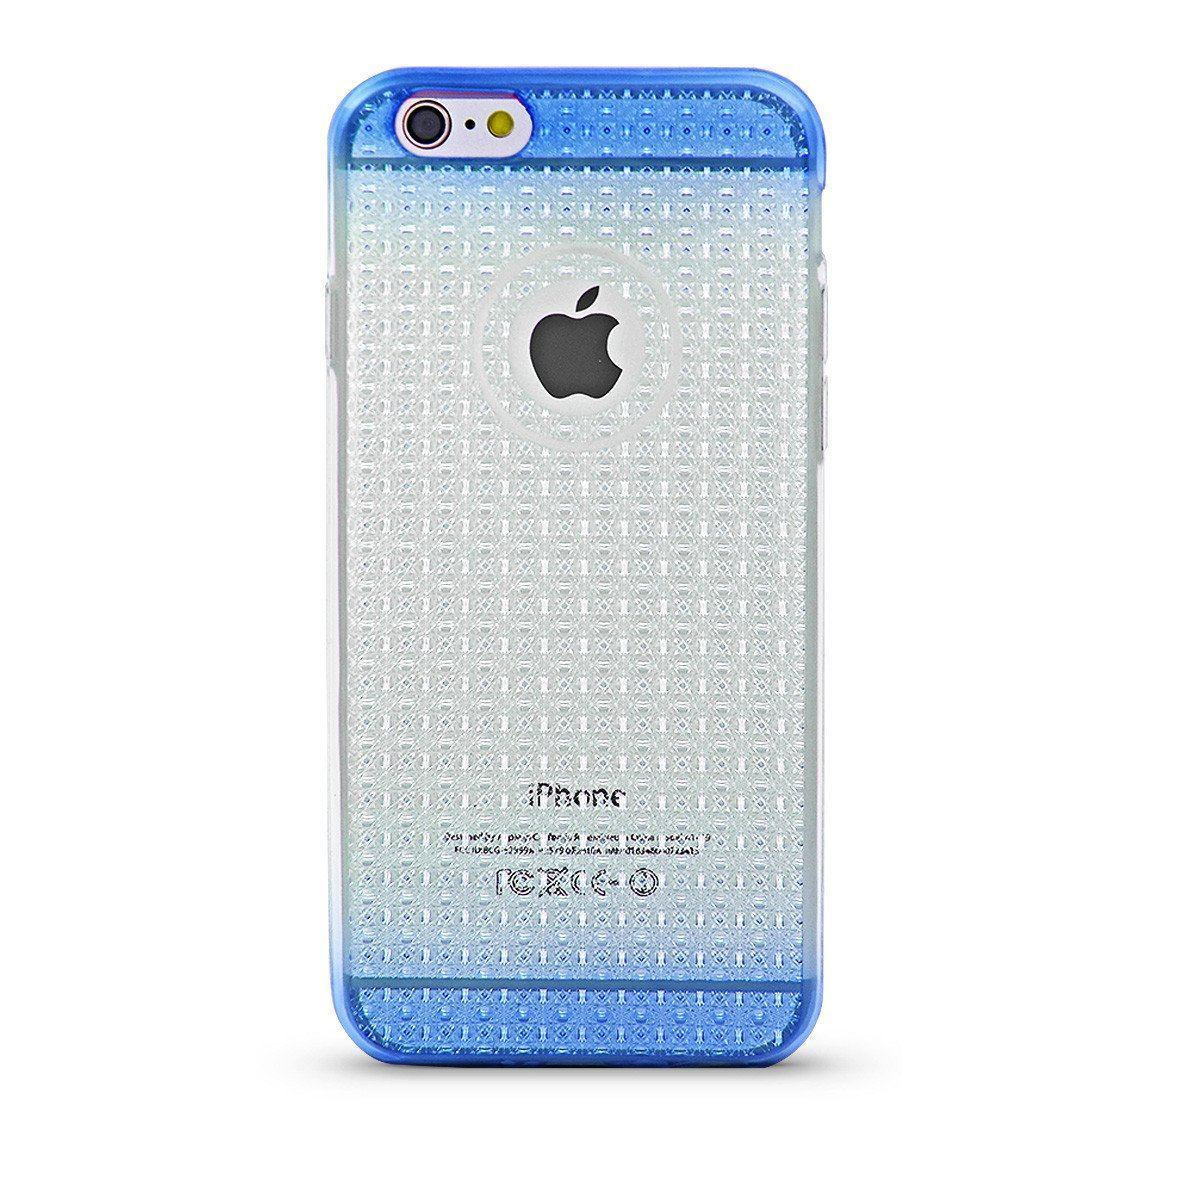 Zoot Case for iPhone 6 Plus - Blue